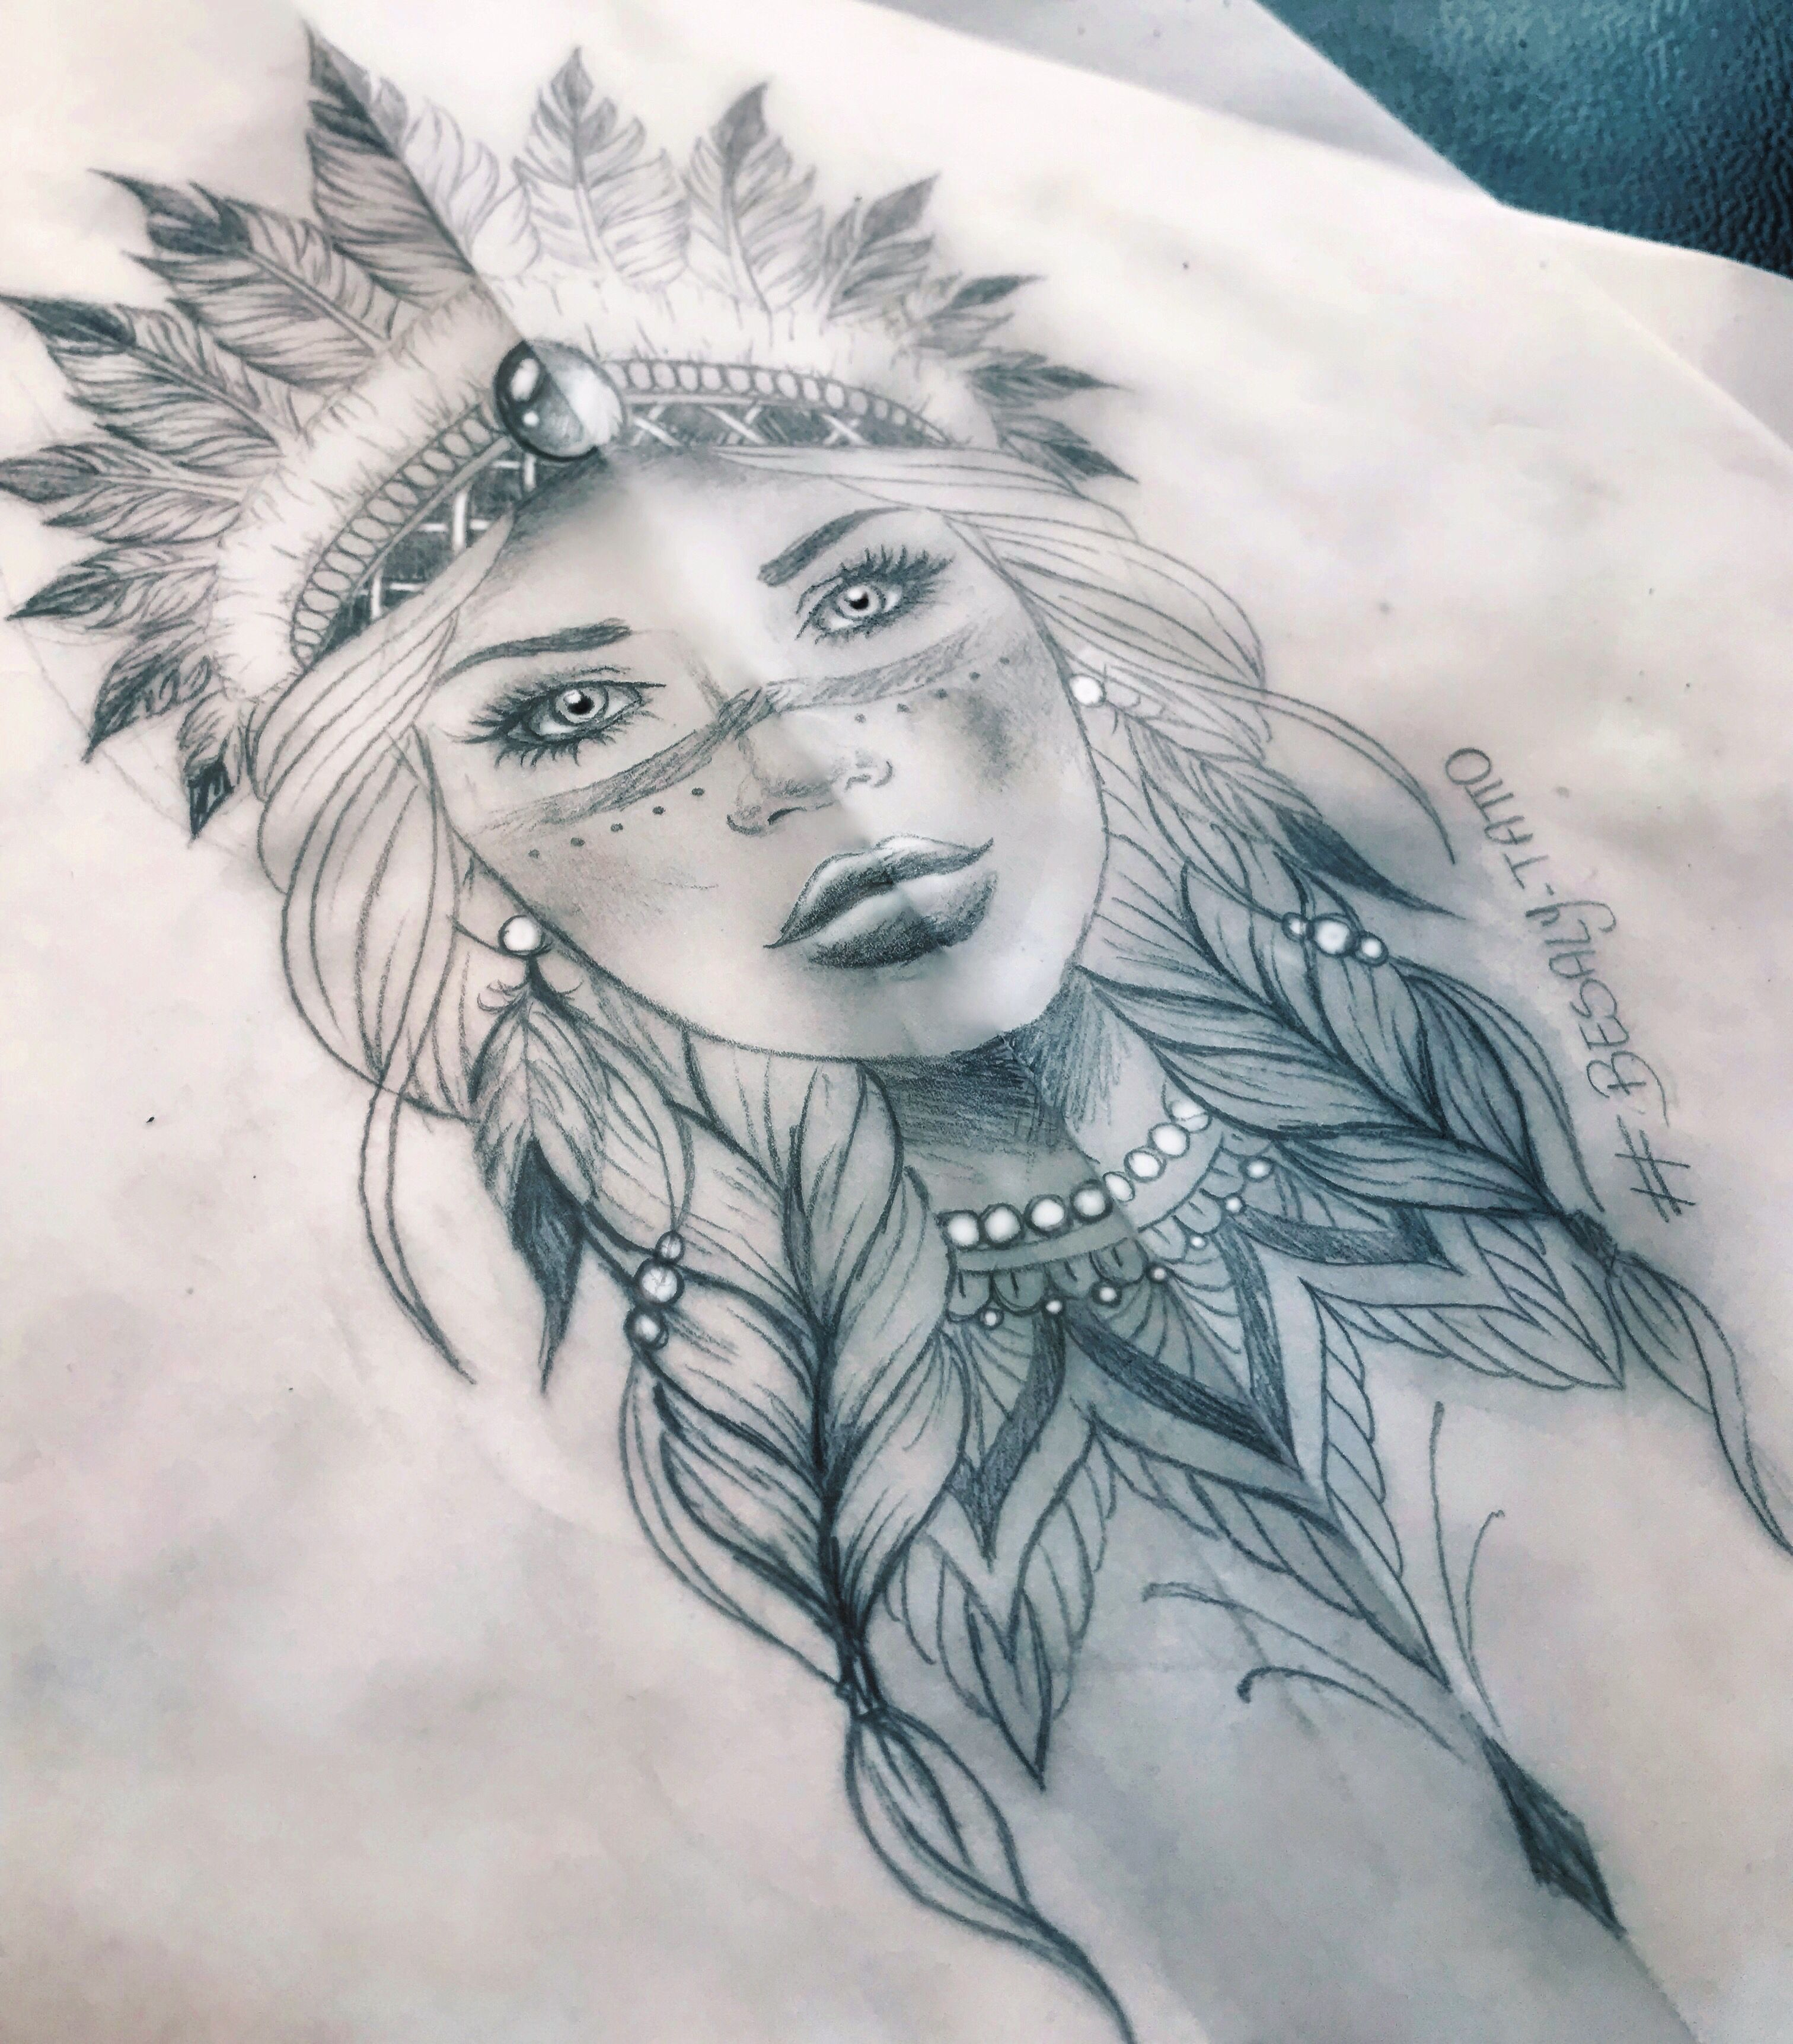 native indian girl tattoo  #aztec indian native girl tattoo flash design - india... -  native indian girl tattoo  #aztec indian native girl tattoo flash design – indiana nativa ragazza - #aztec #design #flash #girl #india #indian #musictattooideas #native #tattoo #tattooforwomen #thightattoo